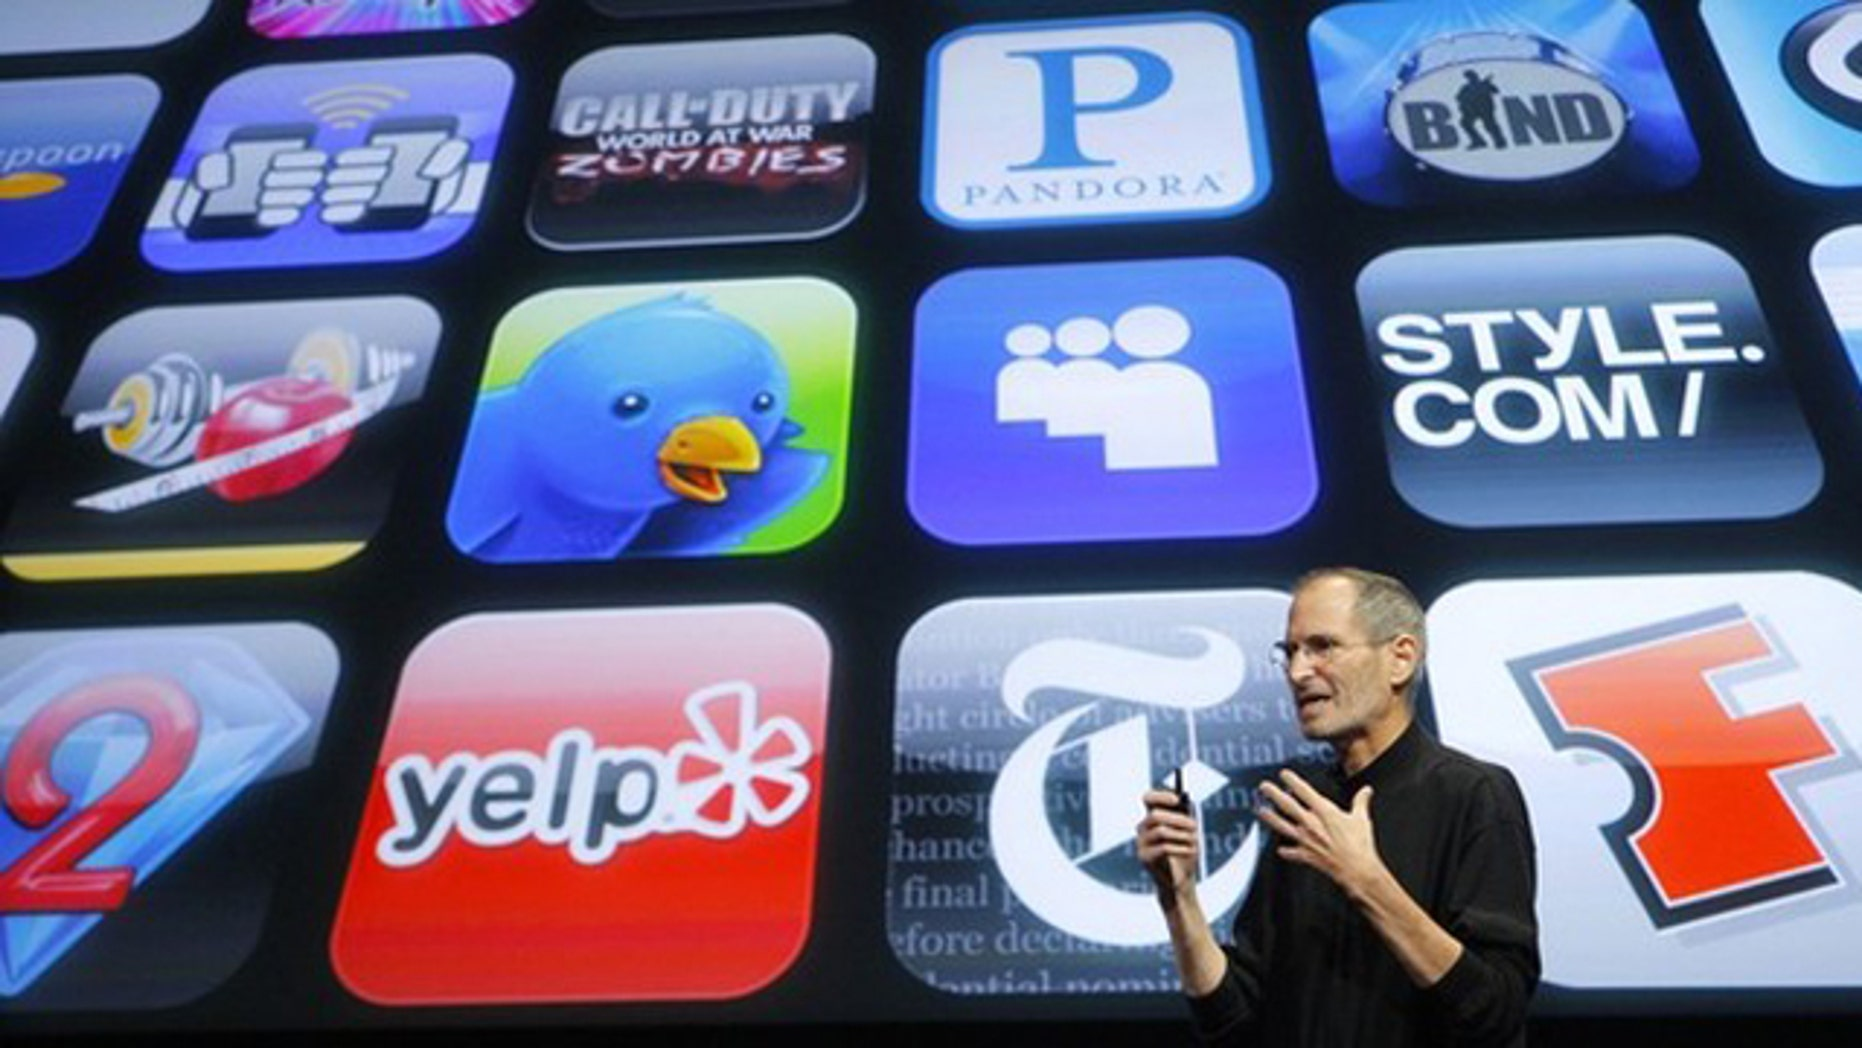 April 8, 2010: Apple Chief Executive Steve Jobs speaks in front of a display showing icons of various apps during the iPhone OS4 special event at Apple headquarters in Cupertino, Calif.